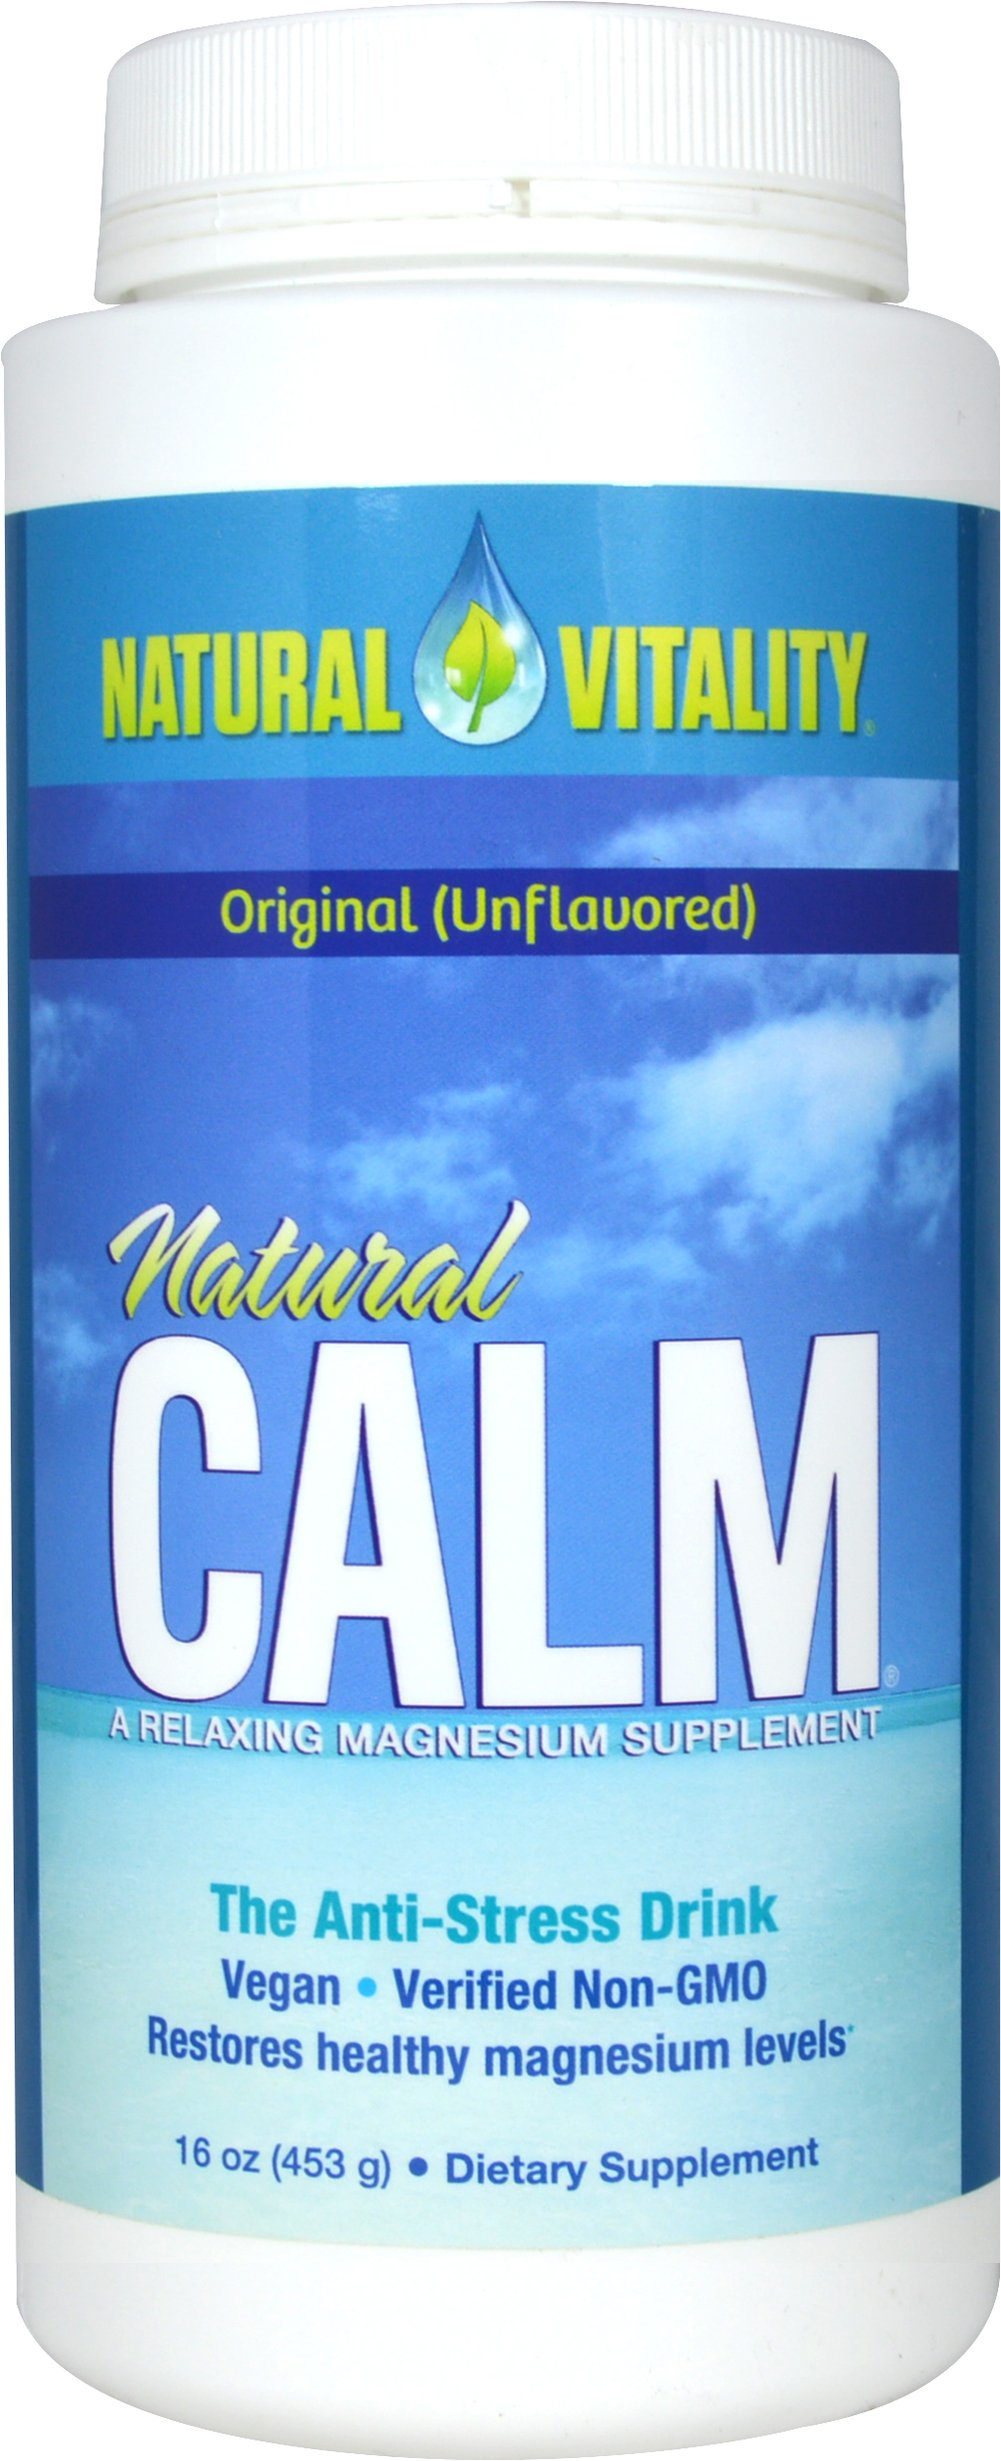 Natural Calm Original <strong>From the Manufacturer's Label:</strong> <p>Award-winning Natural Calm is the best-selling ionic magnesium supplement in the natural products market.</p> 16 oz Powder  $23.97